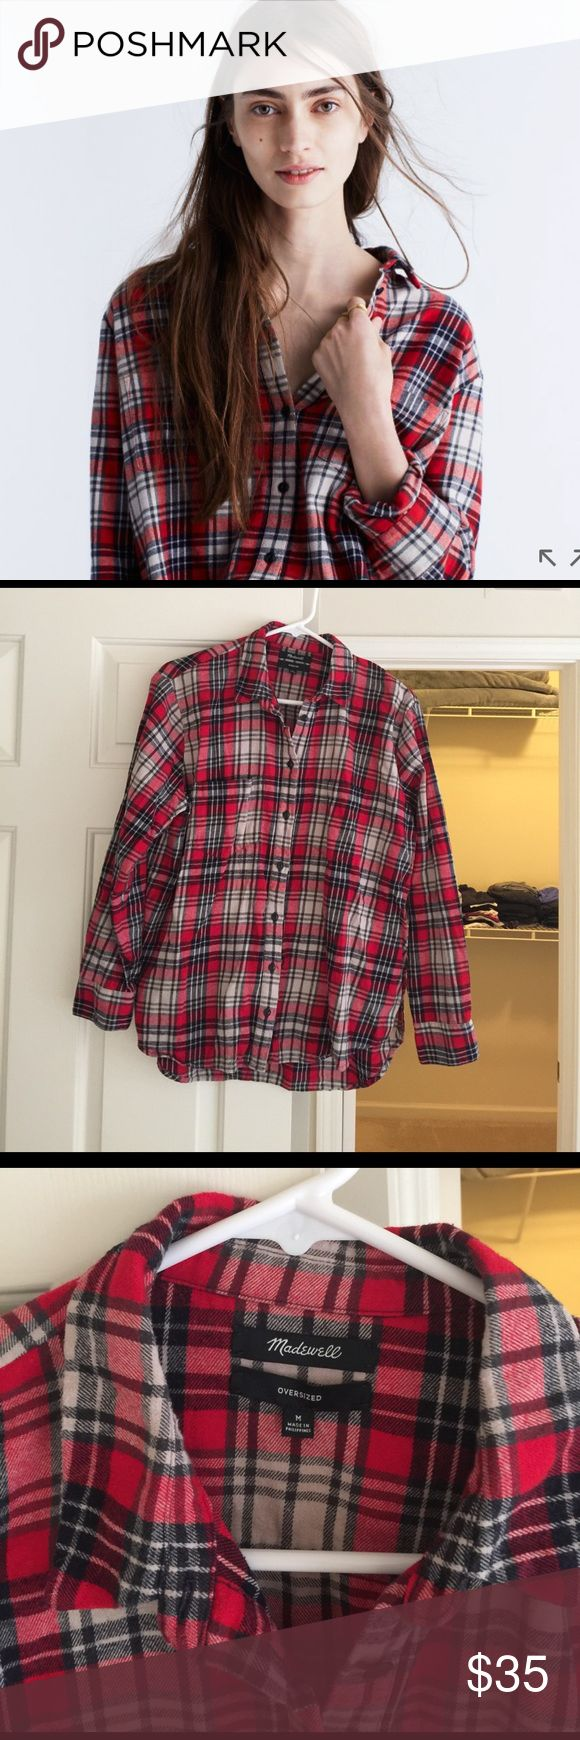 Madewell Flannel Ex Boyfriend Shirt Red M Madewell red plaid shirt like new. Oversized and comfy. Madewell Tops Button Down Shirts